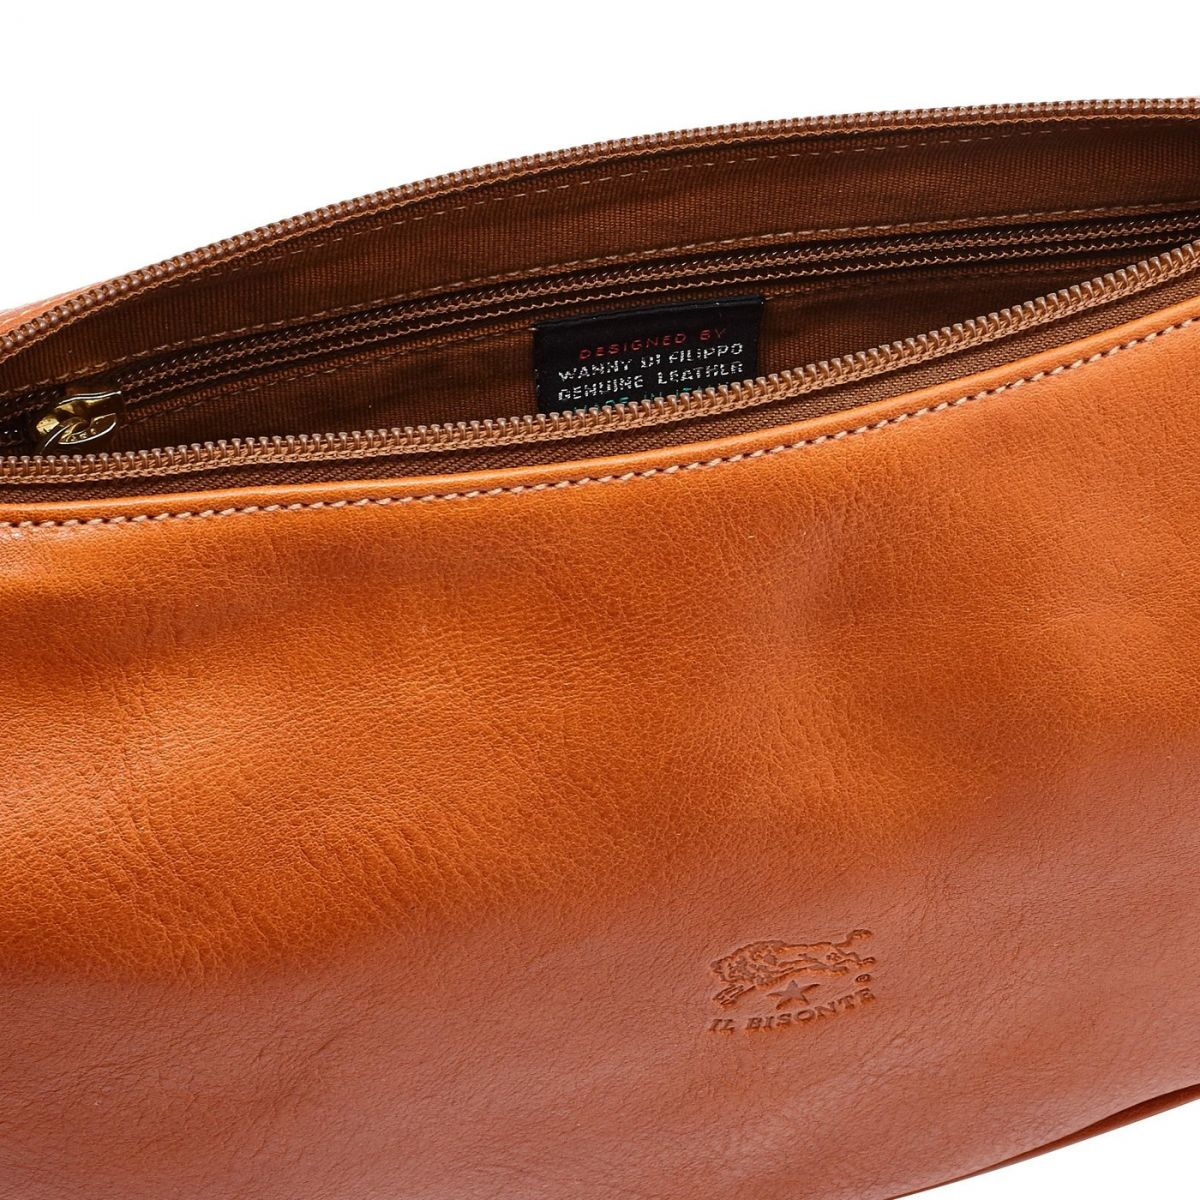 Women's Crossbody Bag in Cowhide Double Leather BCR021 color Caramel | Details